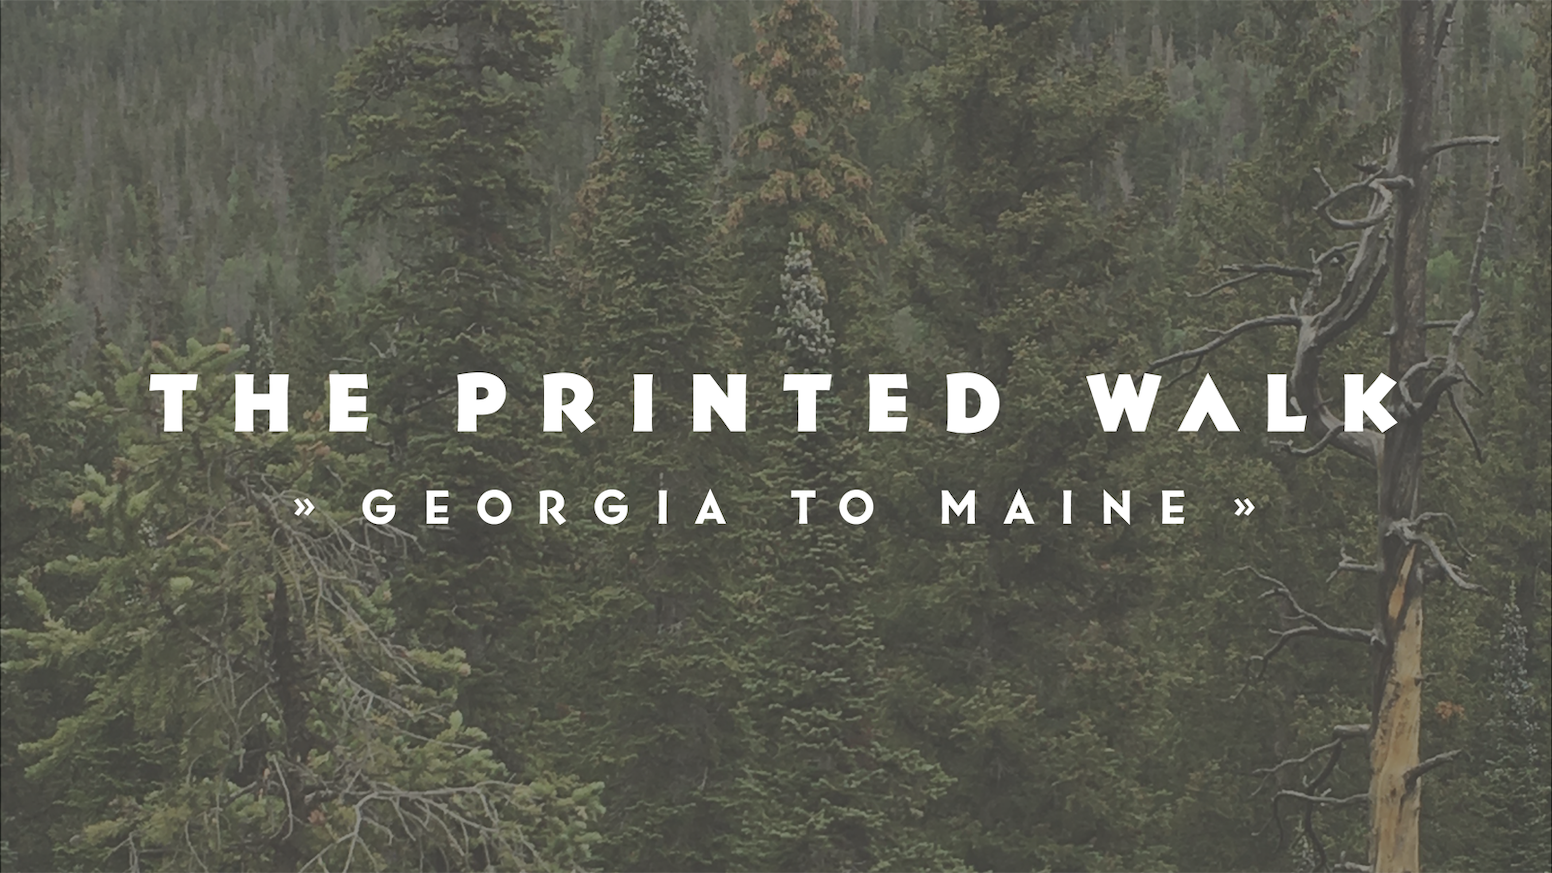 The Printed Walk is a letterpress-printed chronicle of an artist's 2017 thru-hike of the Appalachian Trail.